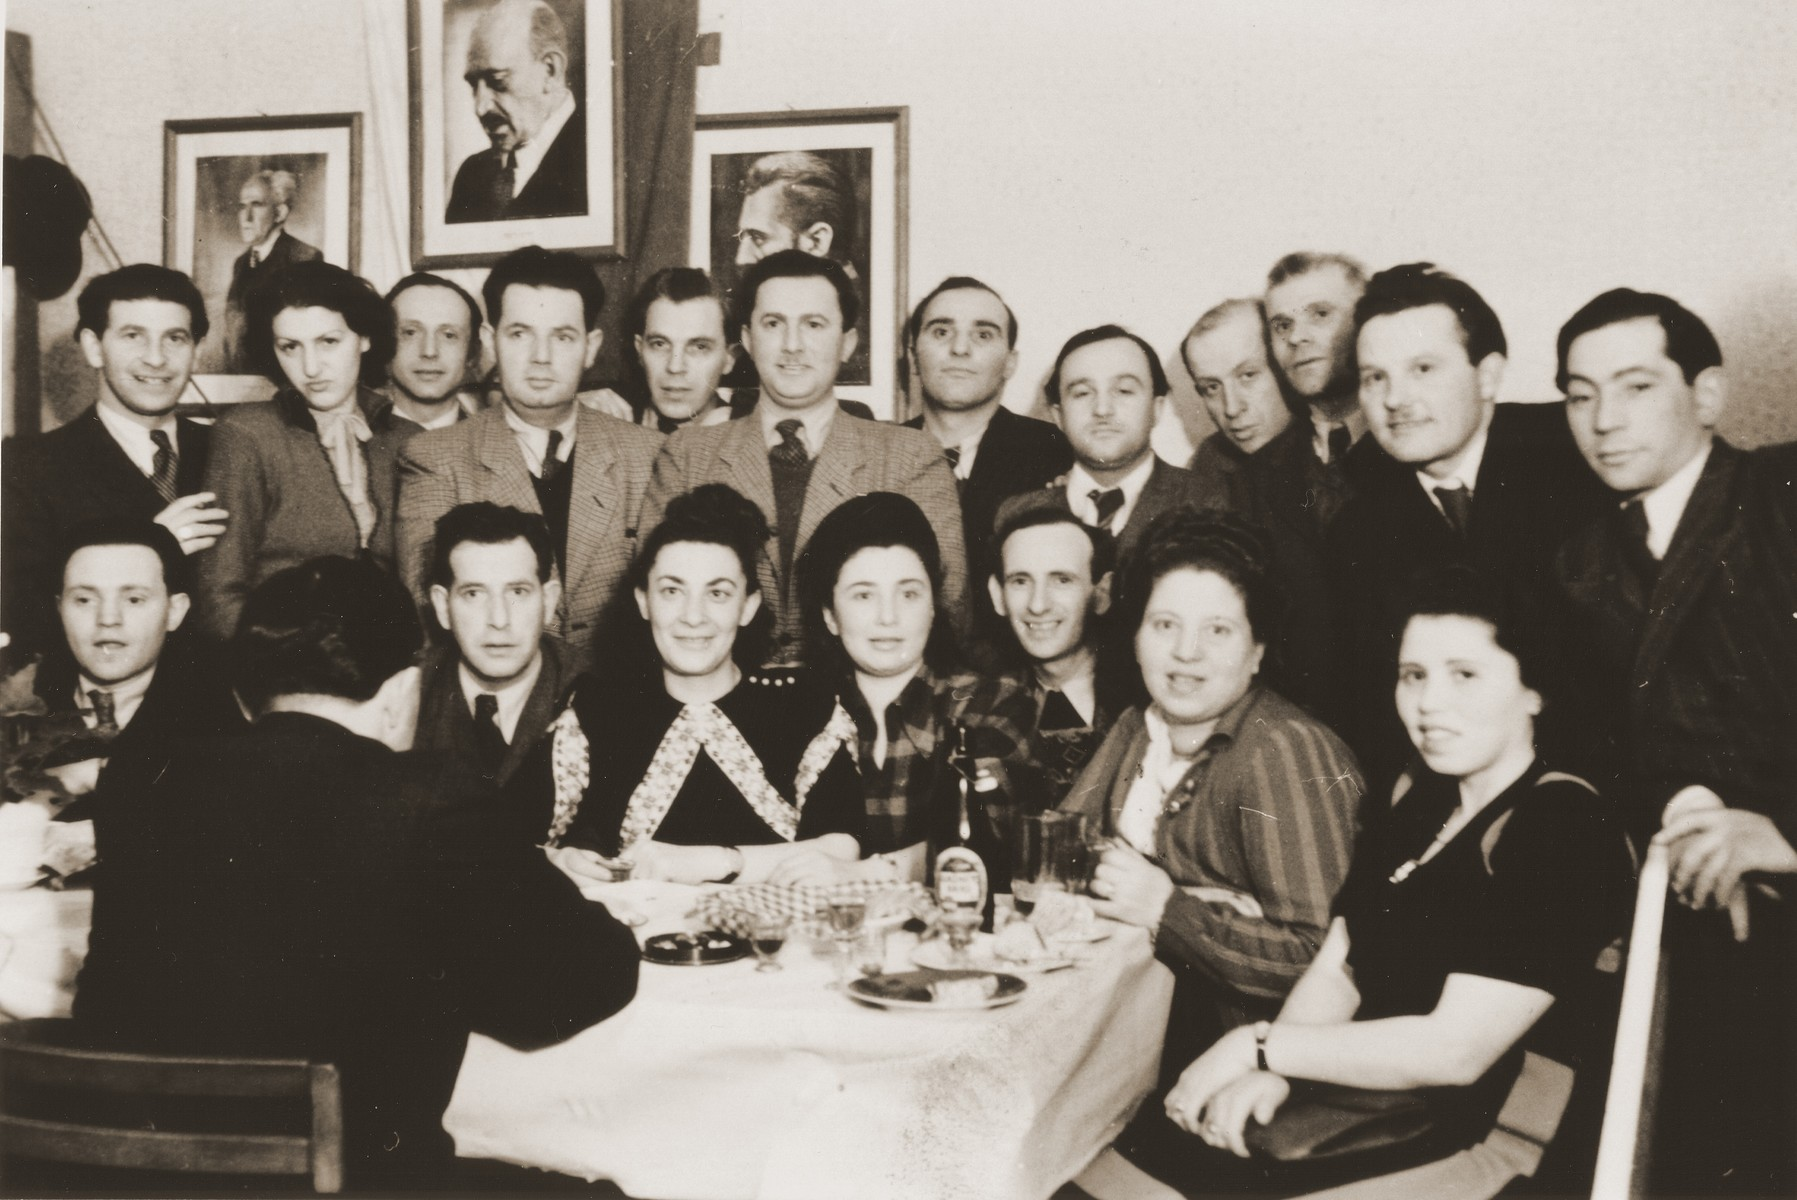 Group portrait of members of the Betar Zionist youth movement gathered around a table in Fuerth, Germany.  Among those pictured are Manfred Schulman, Henek Schwartzbard, Henryk Lanceter, and Klara Schwartzbard.